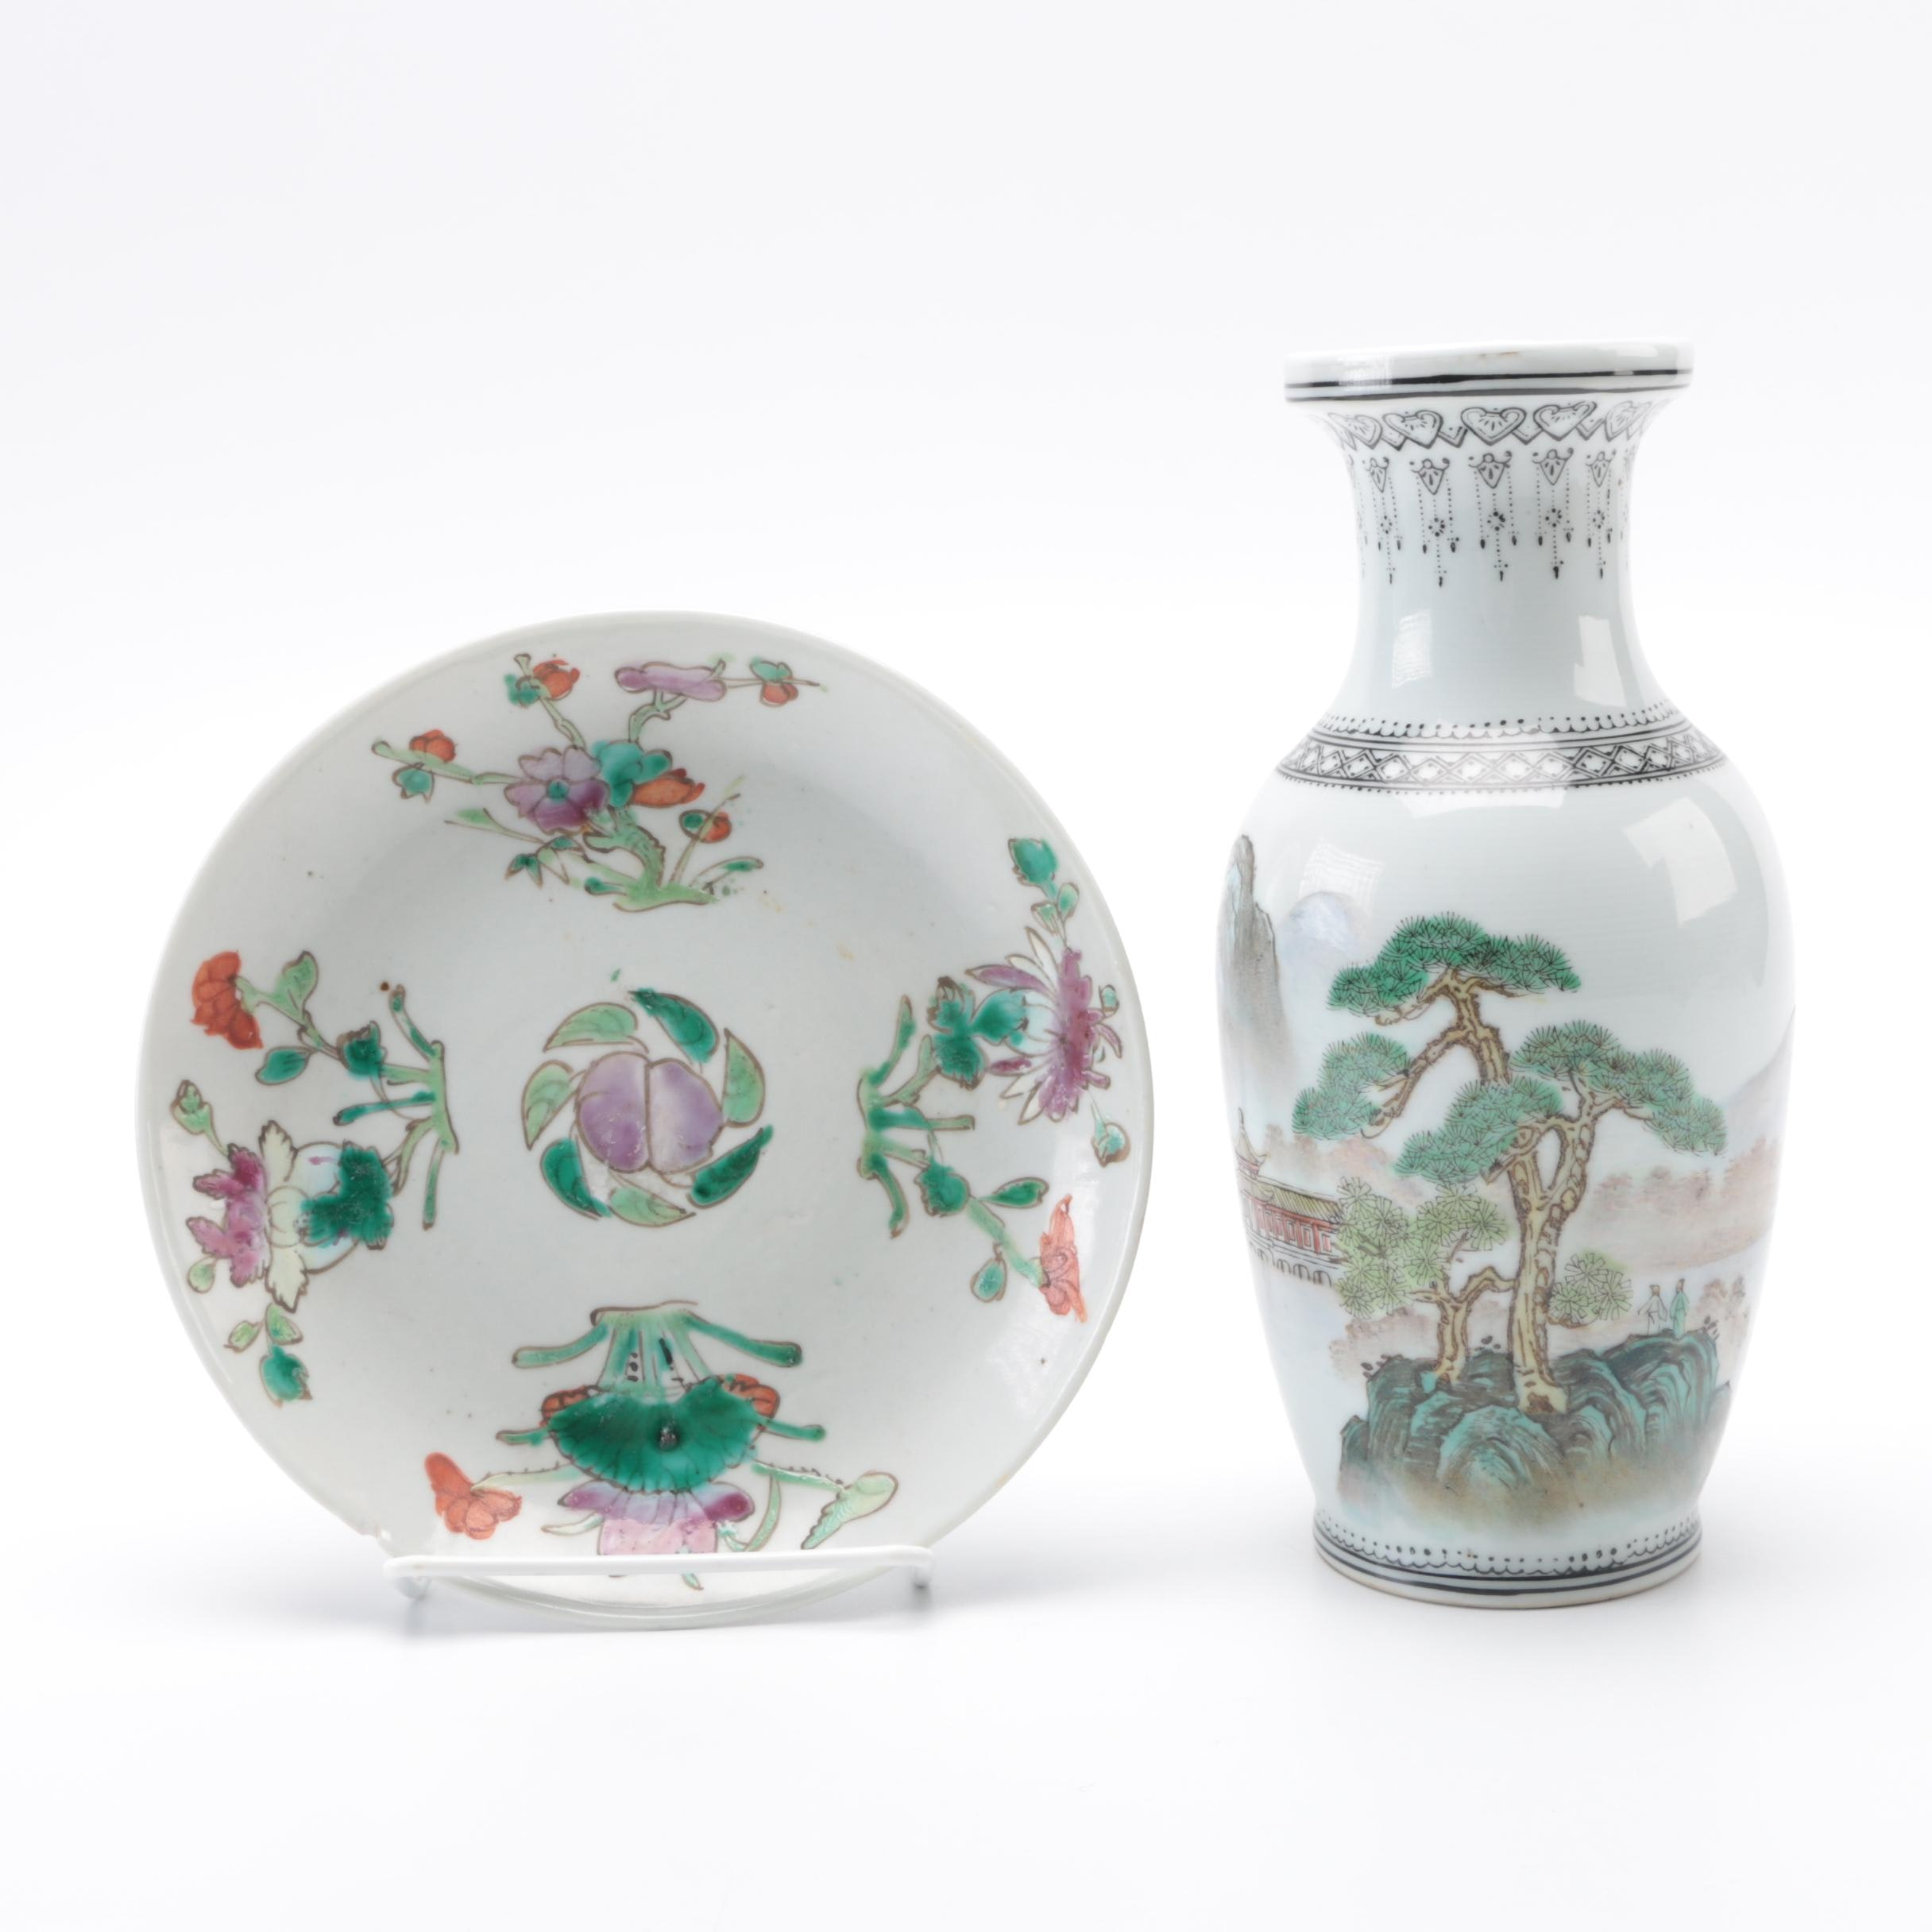 Hand-Painted Floral Vase and Dish